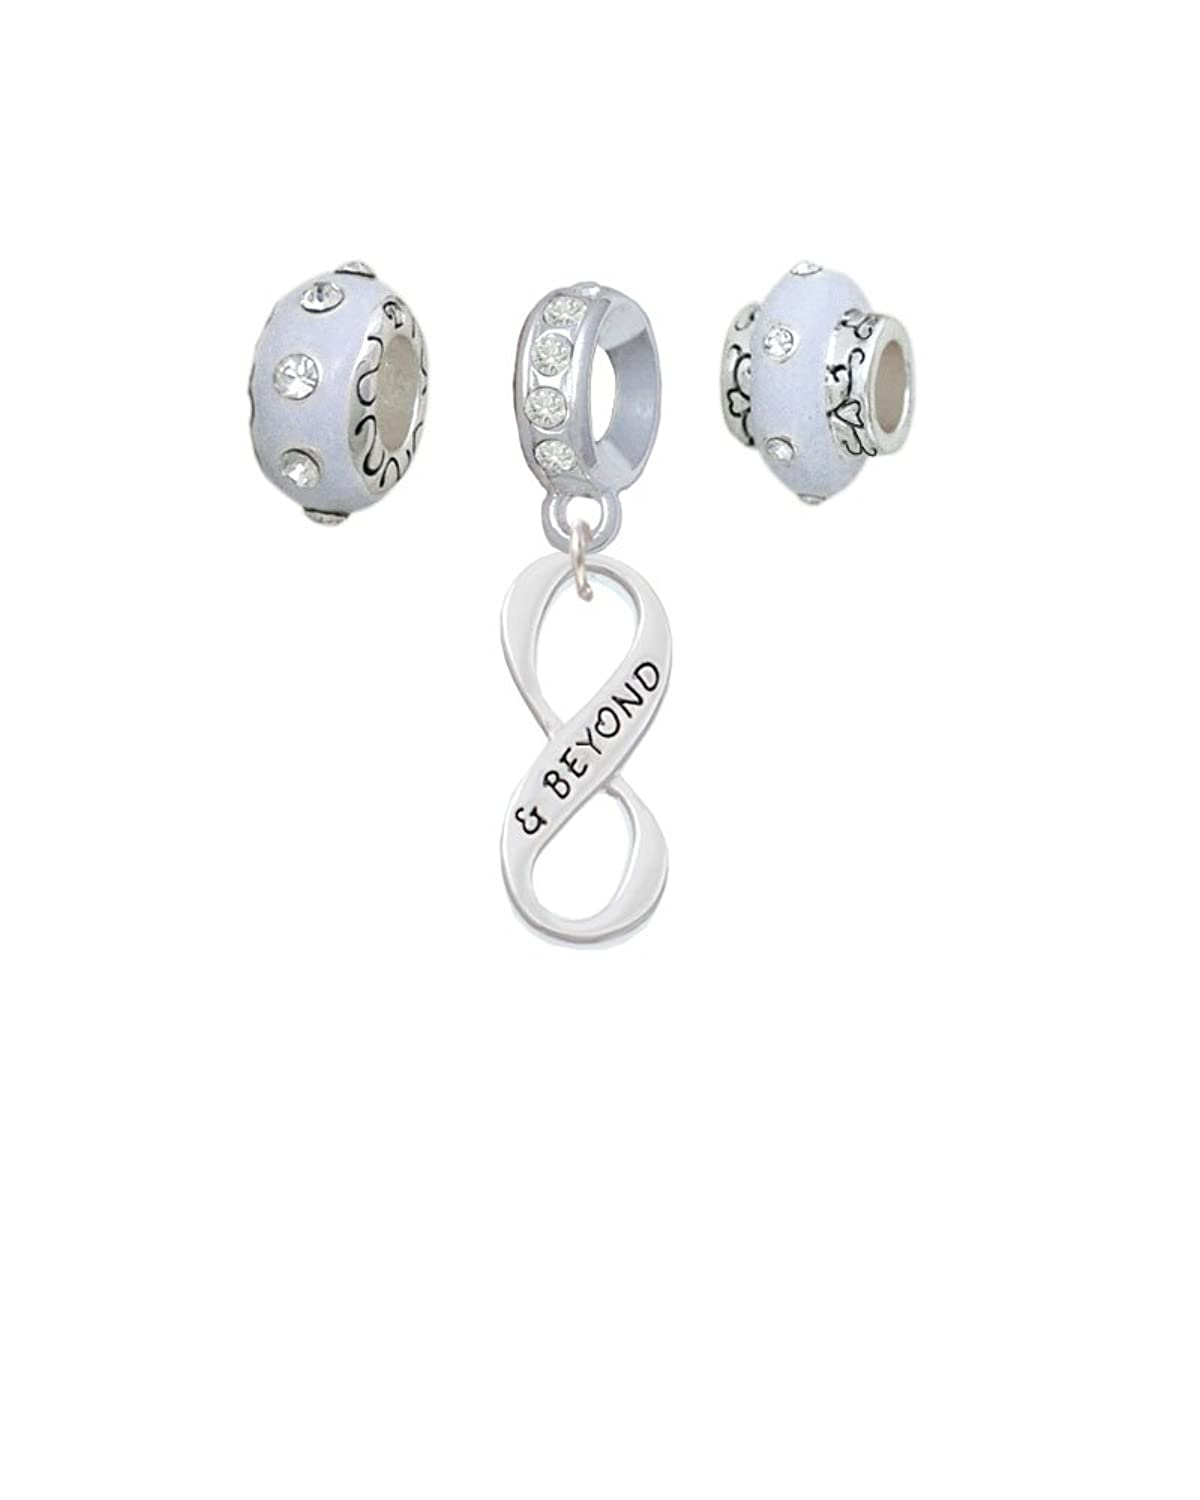 & Beyond Infinity Sign White Charm Beads (Set of 3)